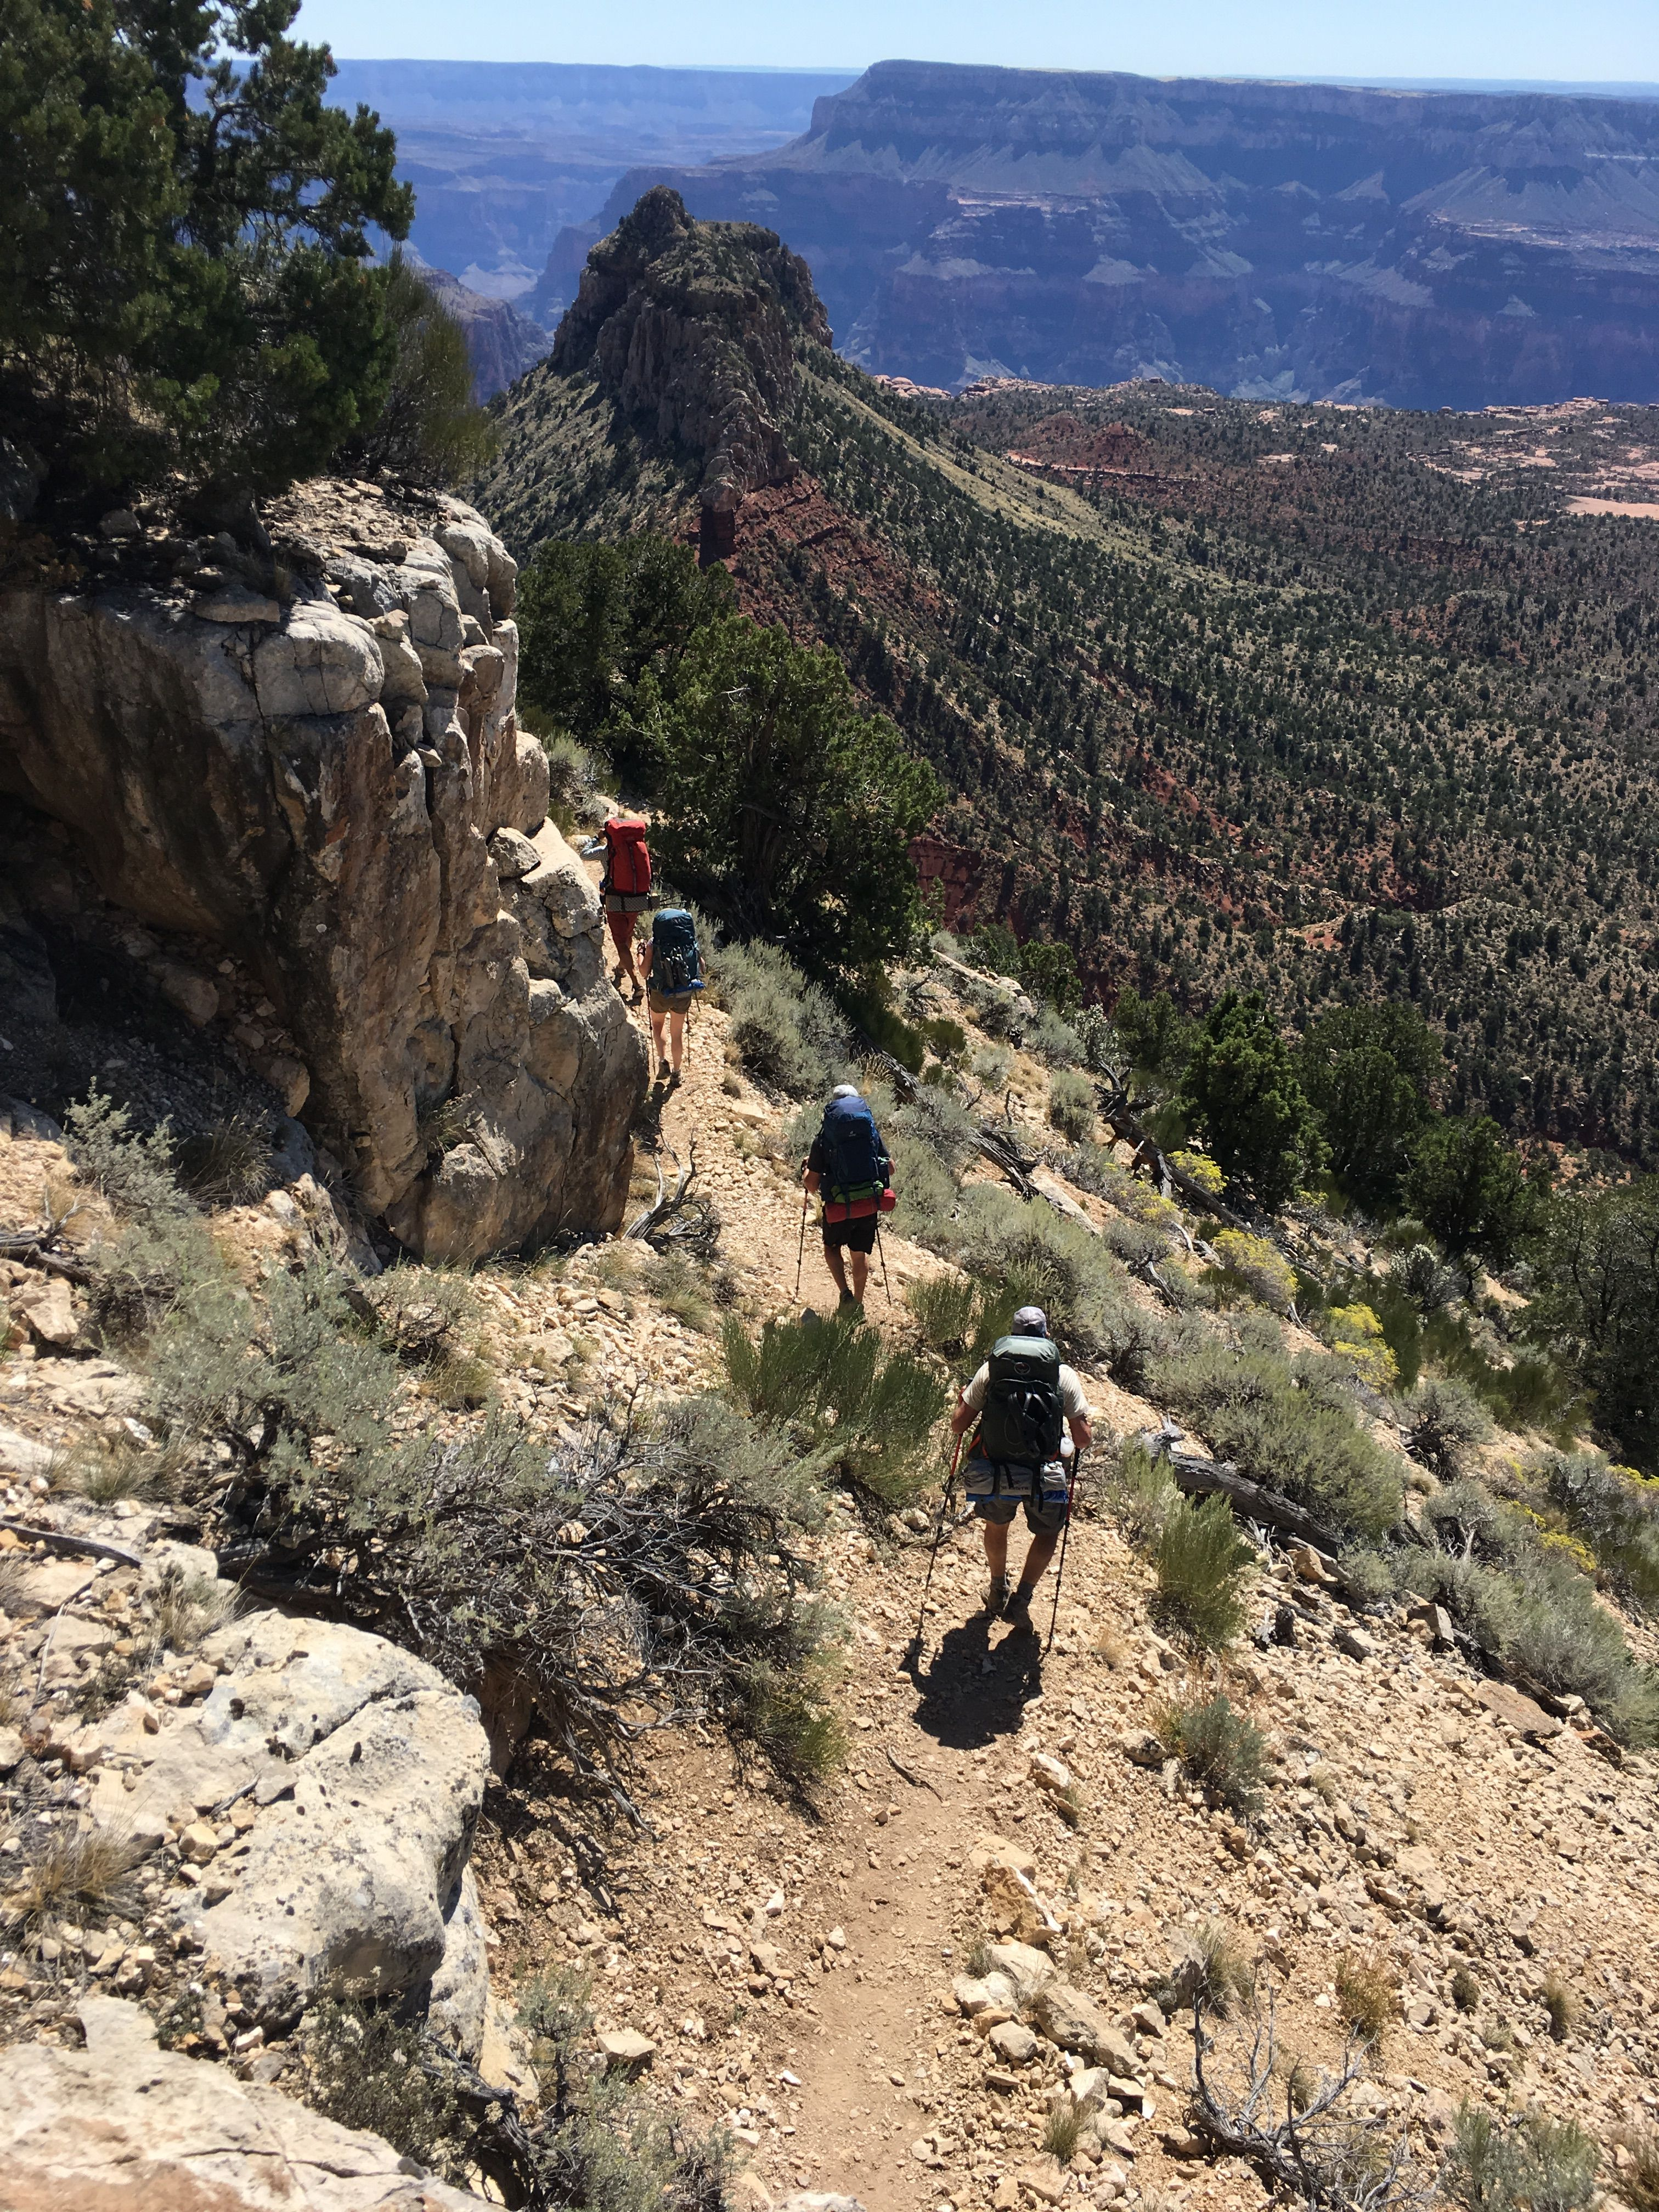 Guided backpacking trip with Four Season Guides into the Grand Canyon.